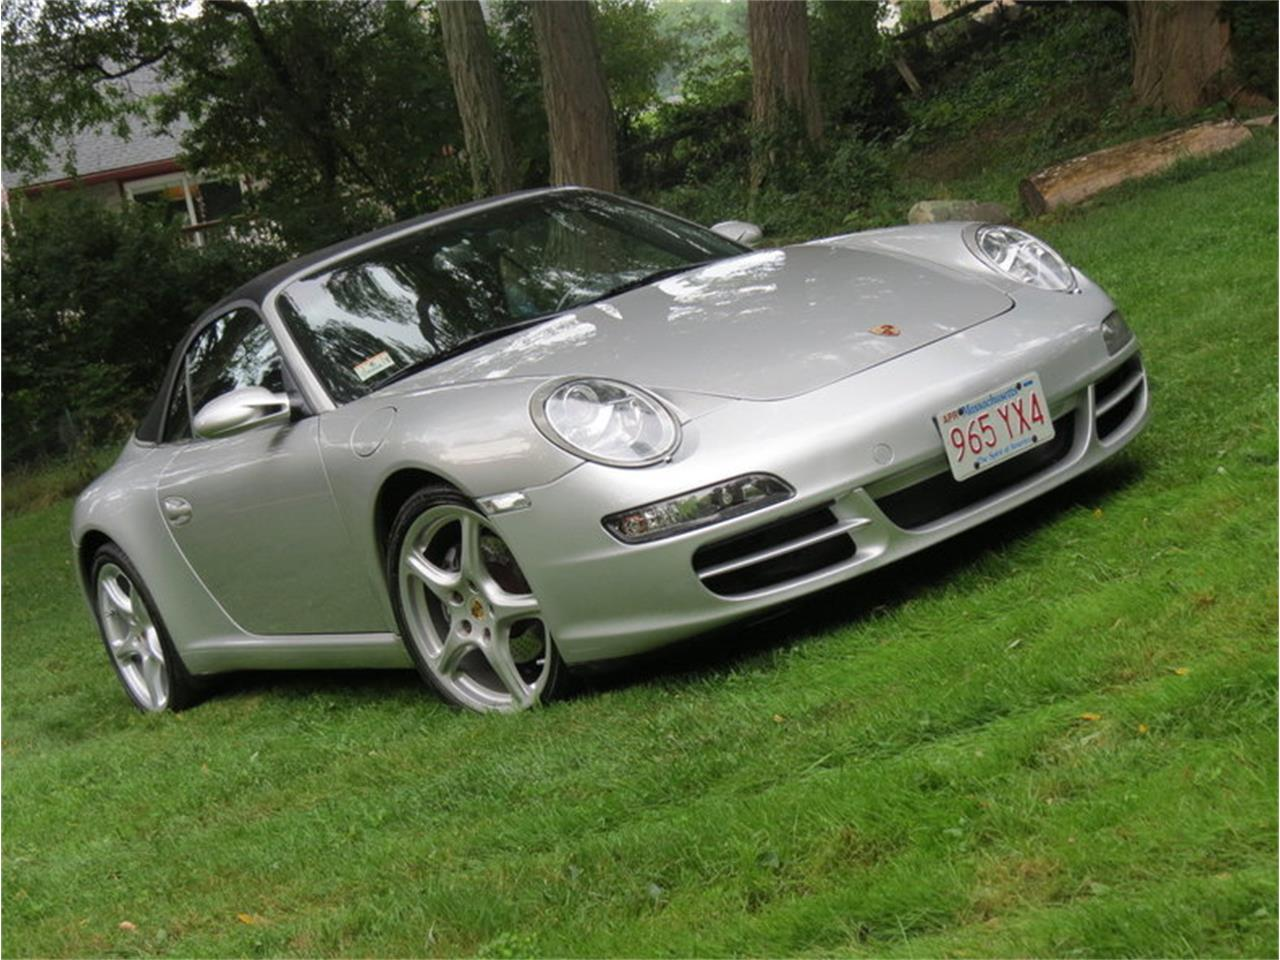 Large Picture of '05 Porsche 911 Carrera - $29,950.00 Offered by Silverstone Motorcars - JD2Q